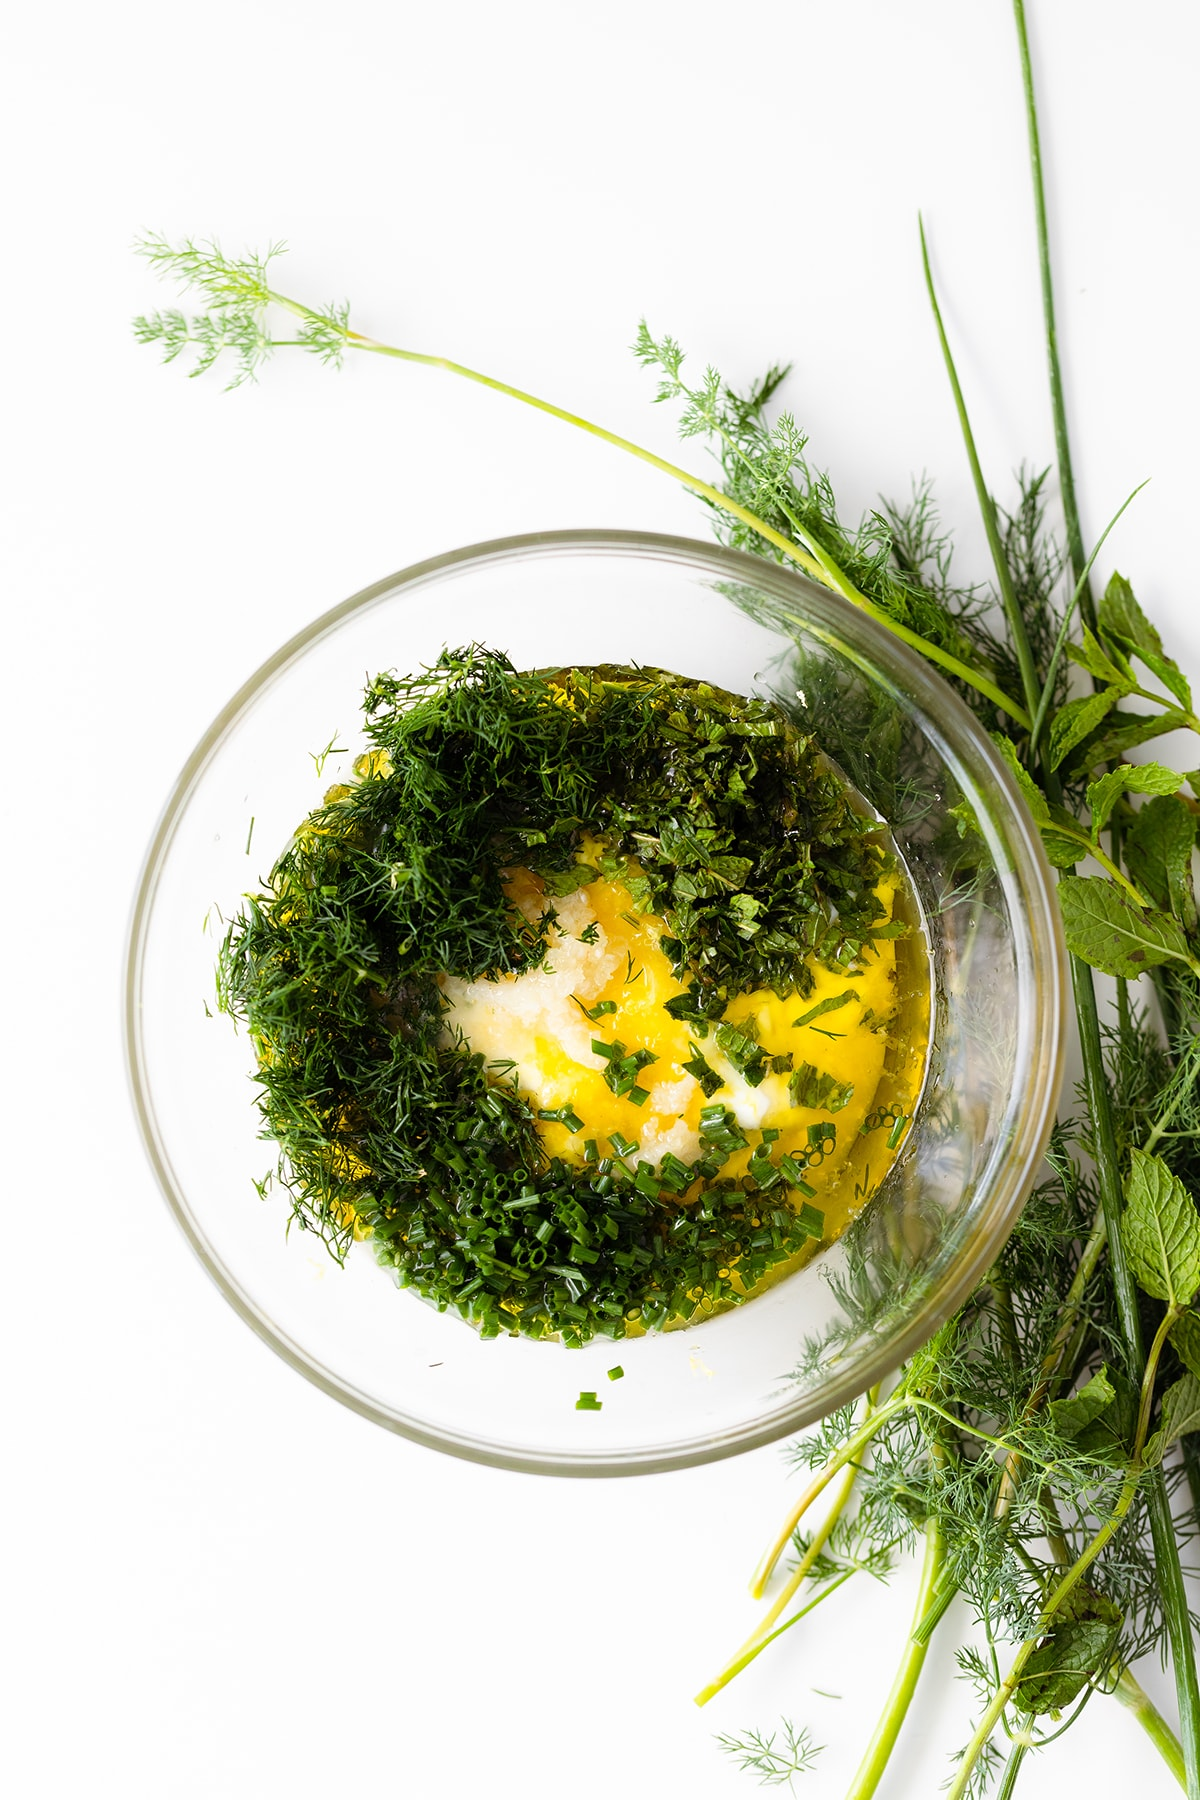 Fresh herbs, yogurt, olive oil, and lemon juice in a glass bowl on white background. Overhead shot